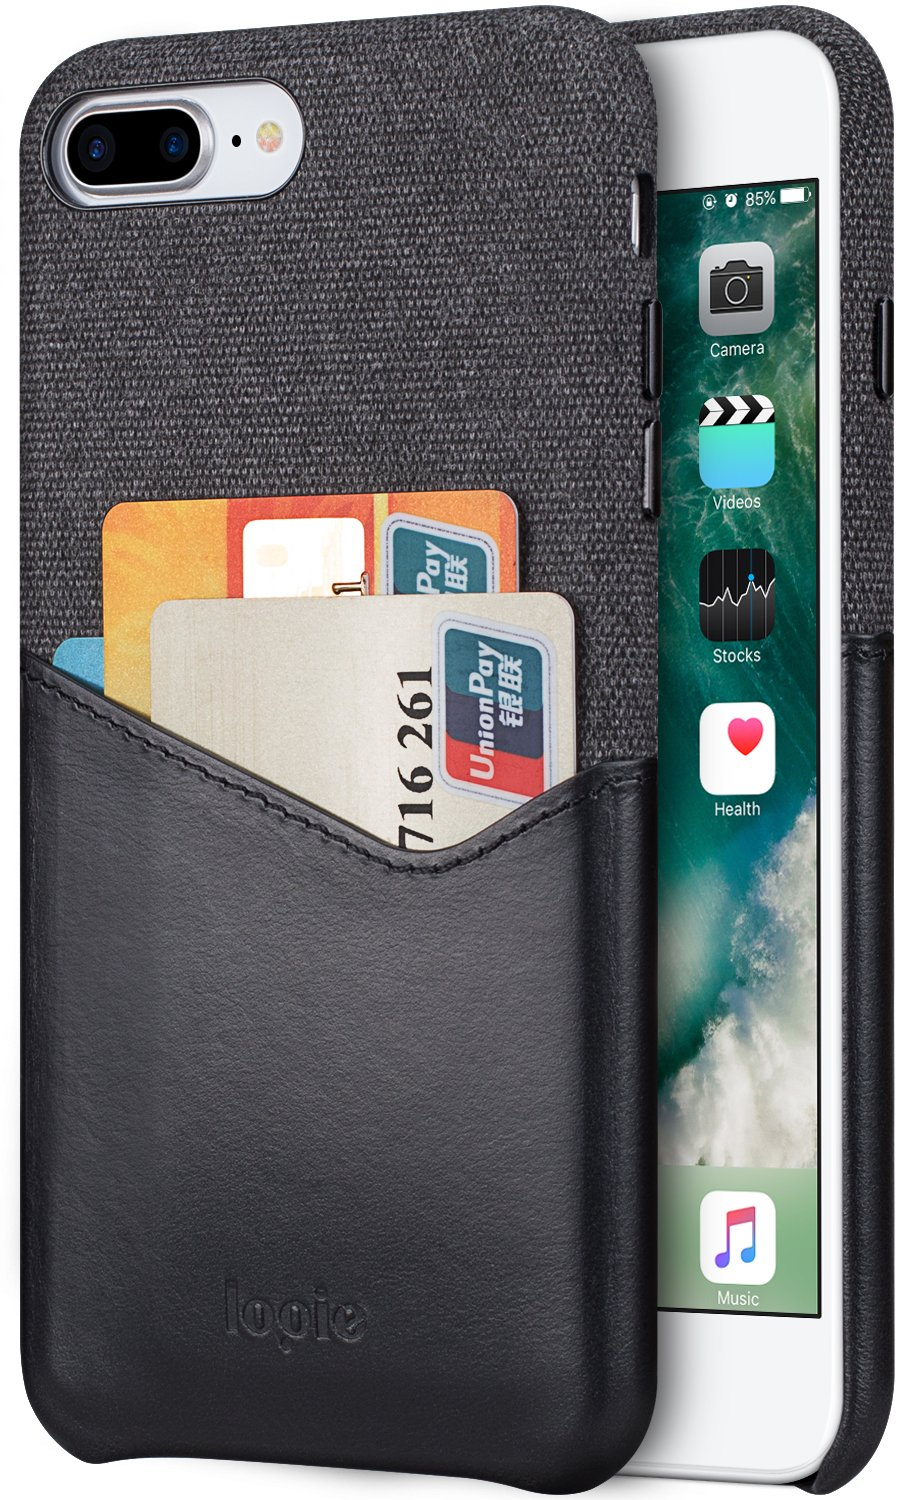 Lopie [Sea Island Cotton Series] Slim Card Case for Apple iPhone 7 Plus and iPhone 8 Plus, Fabric Protection Cover with Leather Card Holder Slot Design, Black